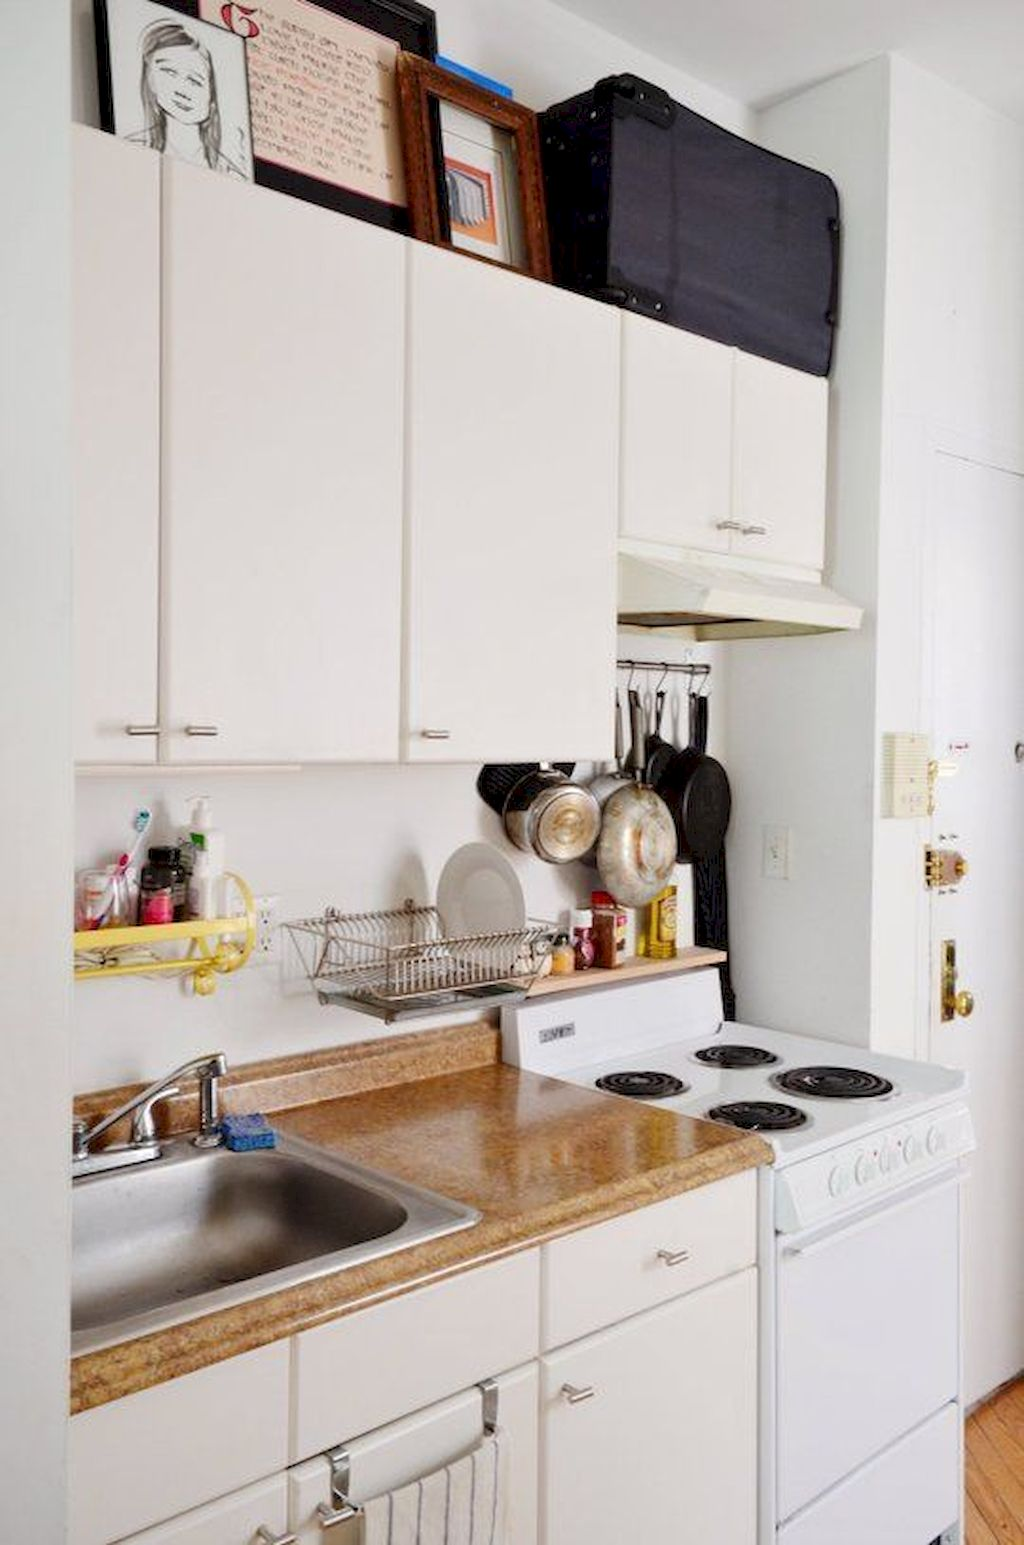 Kitchen Plan And Design For Small Room (93)